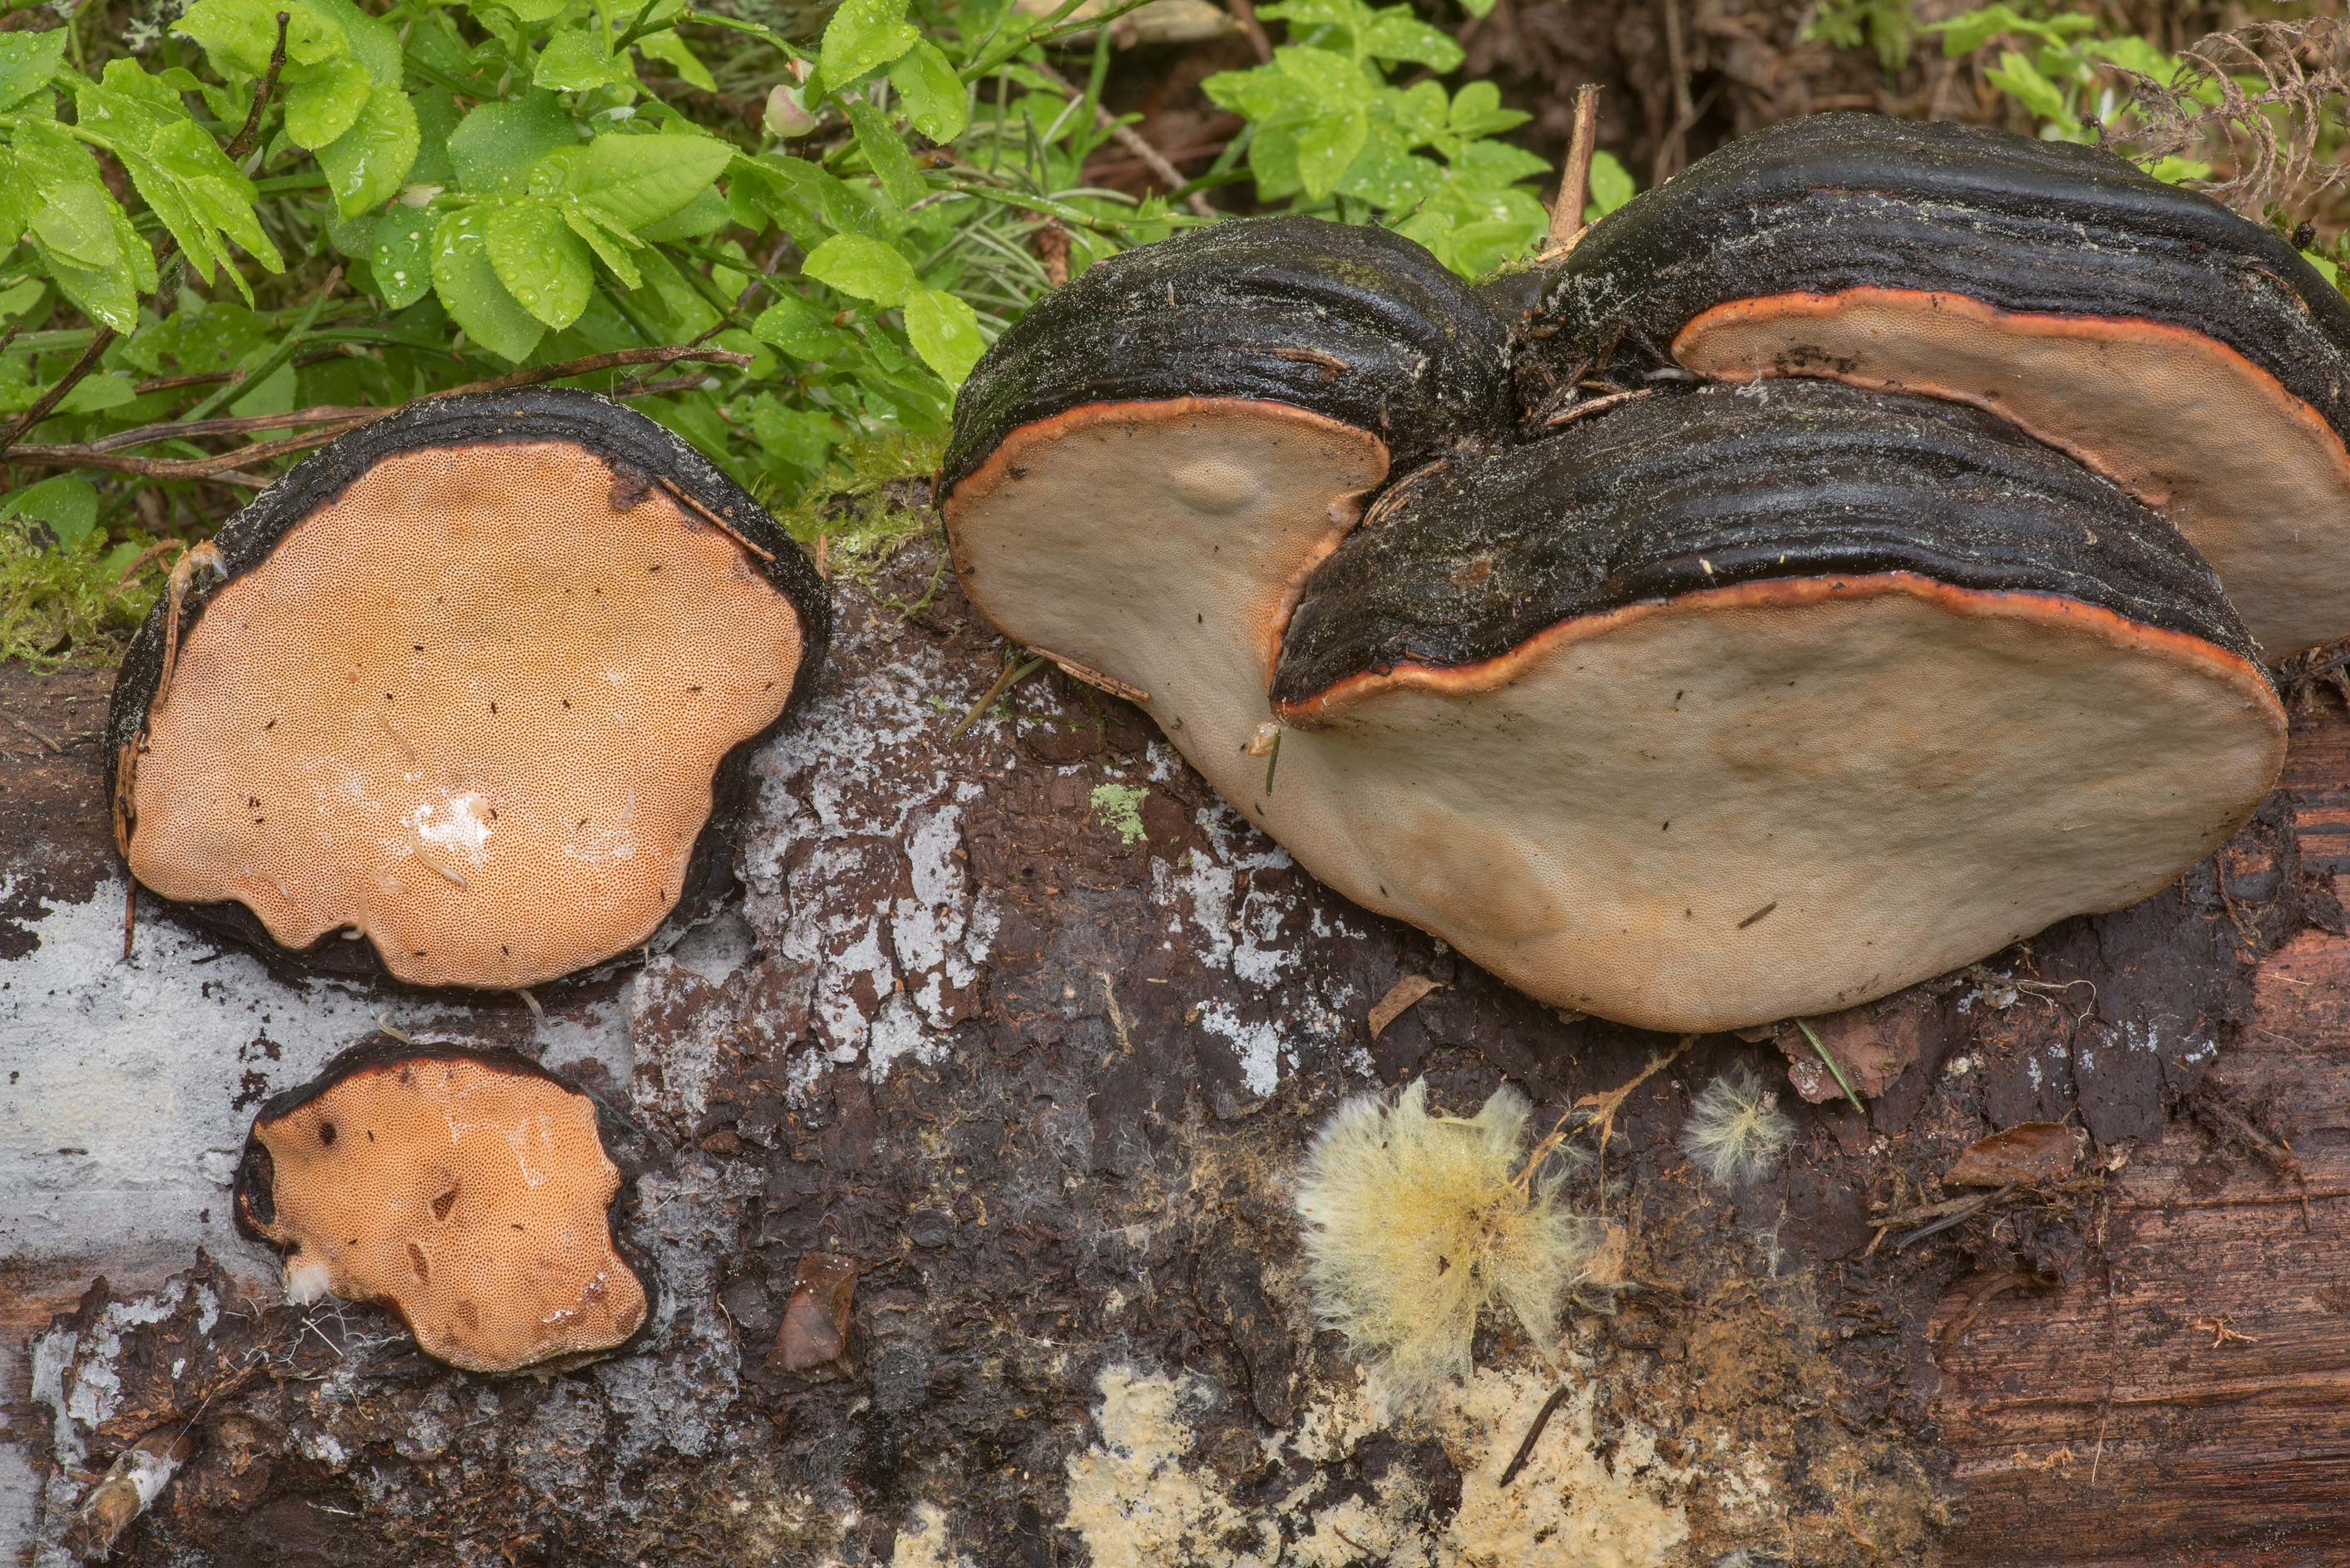 Red-belted bracket mushrooms (Fomitopsis pinicola...miles north from St.Petersburg. Russia